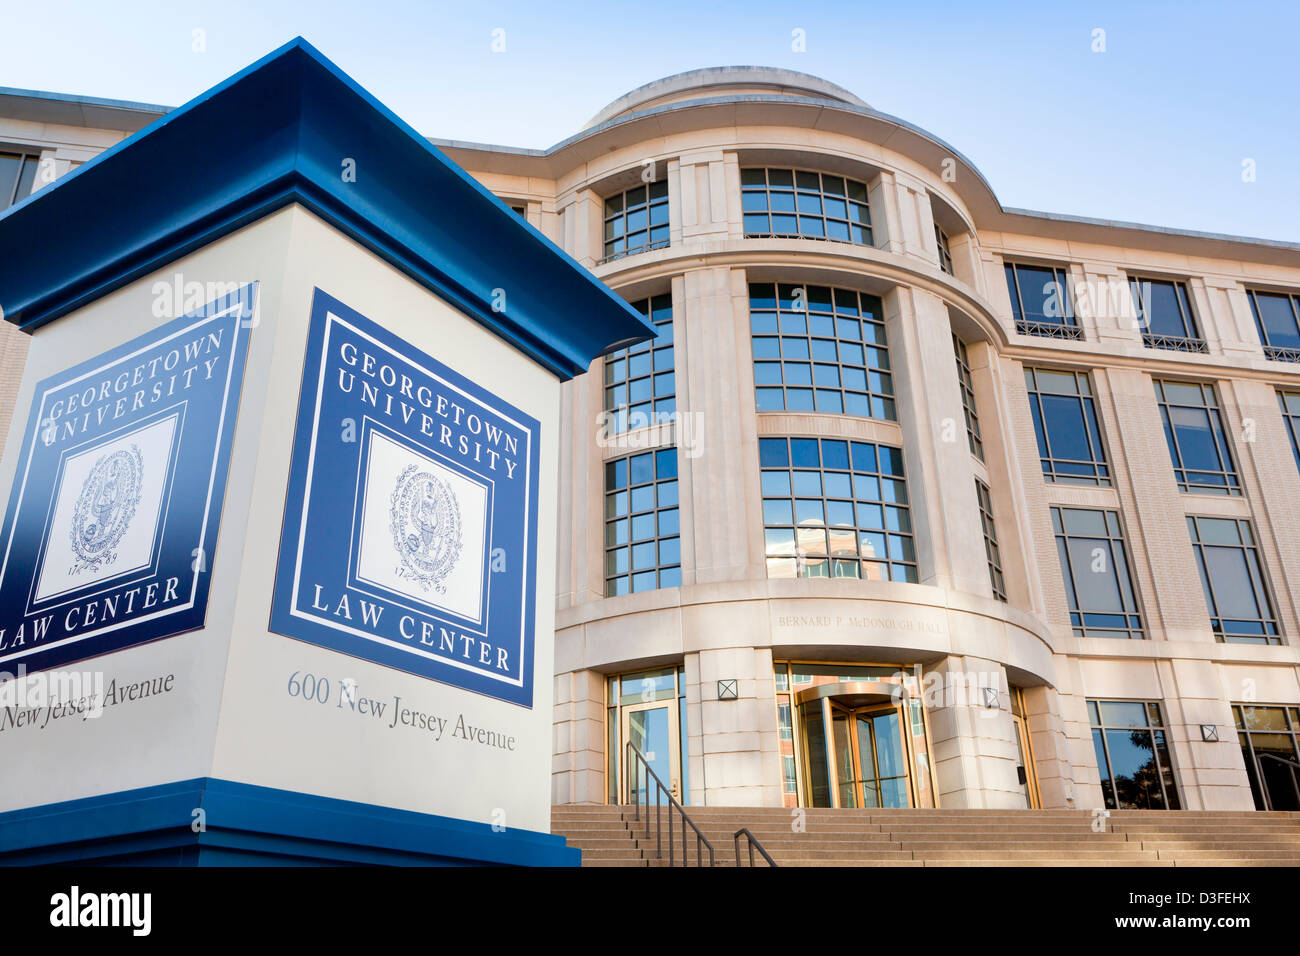 Georgetown University Law Center building - Washington, DC USA - Stock Image